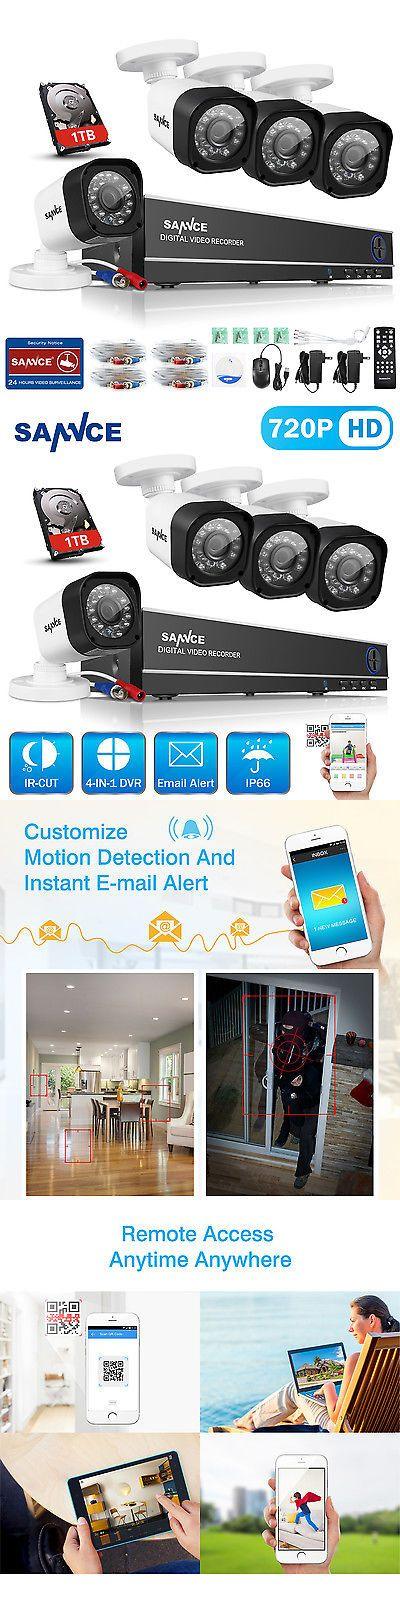 Security Cameras: Sannce 1080N 8Ch Hdmi Dvr Outdoor Home Video 1500Tvl Security Camera System 1Tb BUY IT NOW ONLY: $143.8